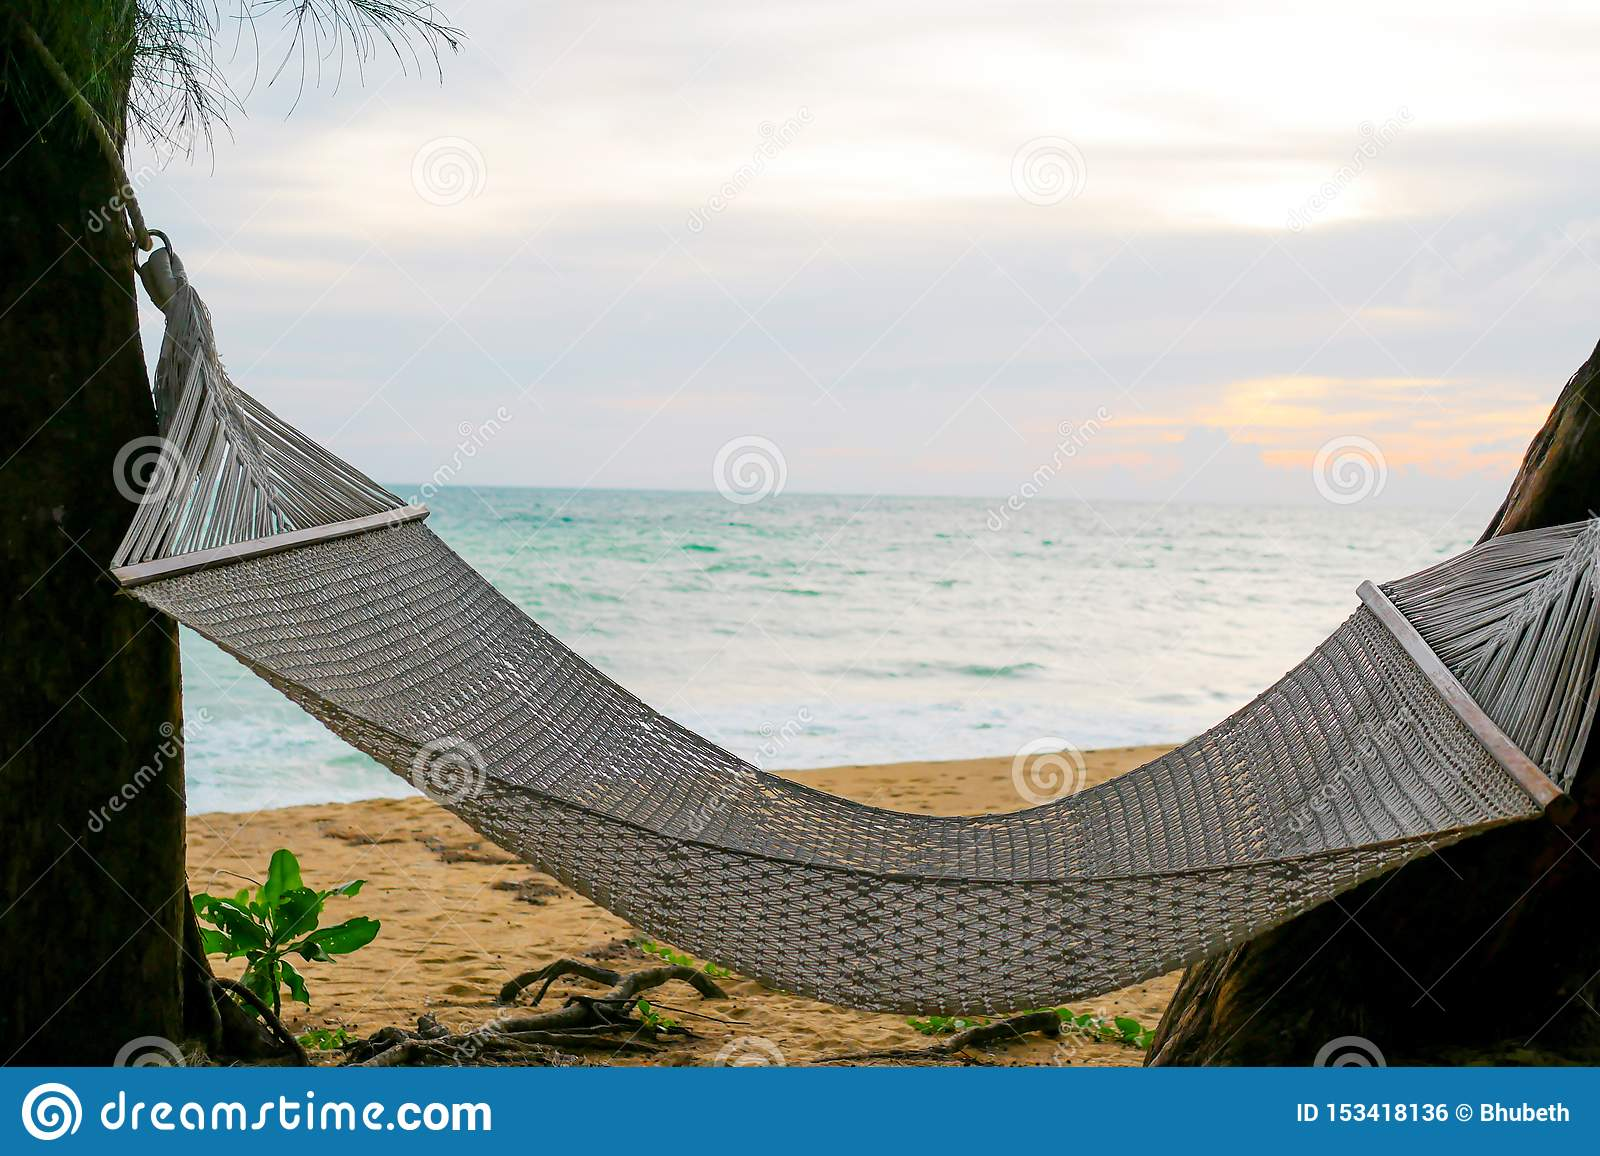 White rope crib is hanging between the trees near the beach and sea in the sunset time that representing relaxing and freshness